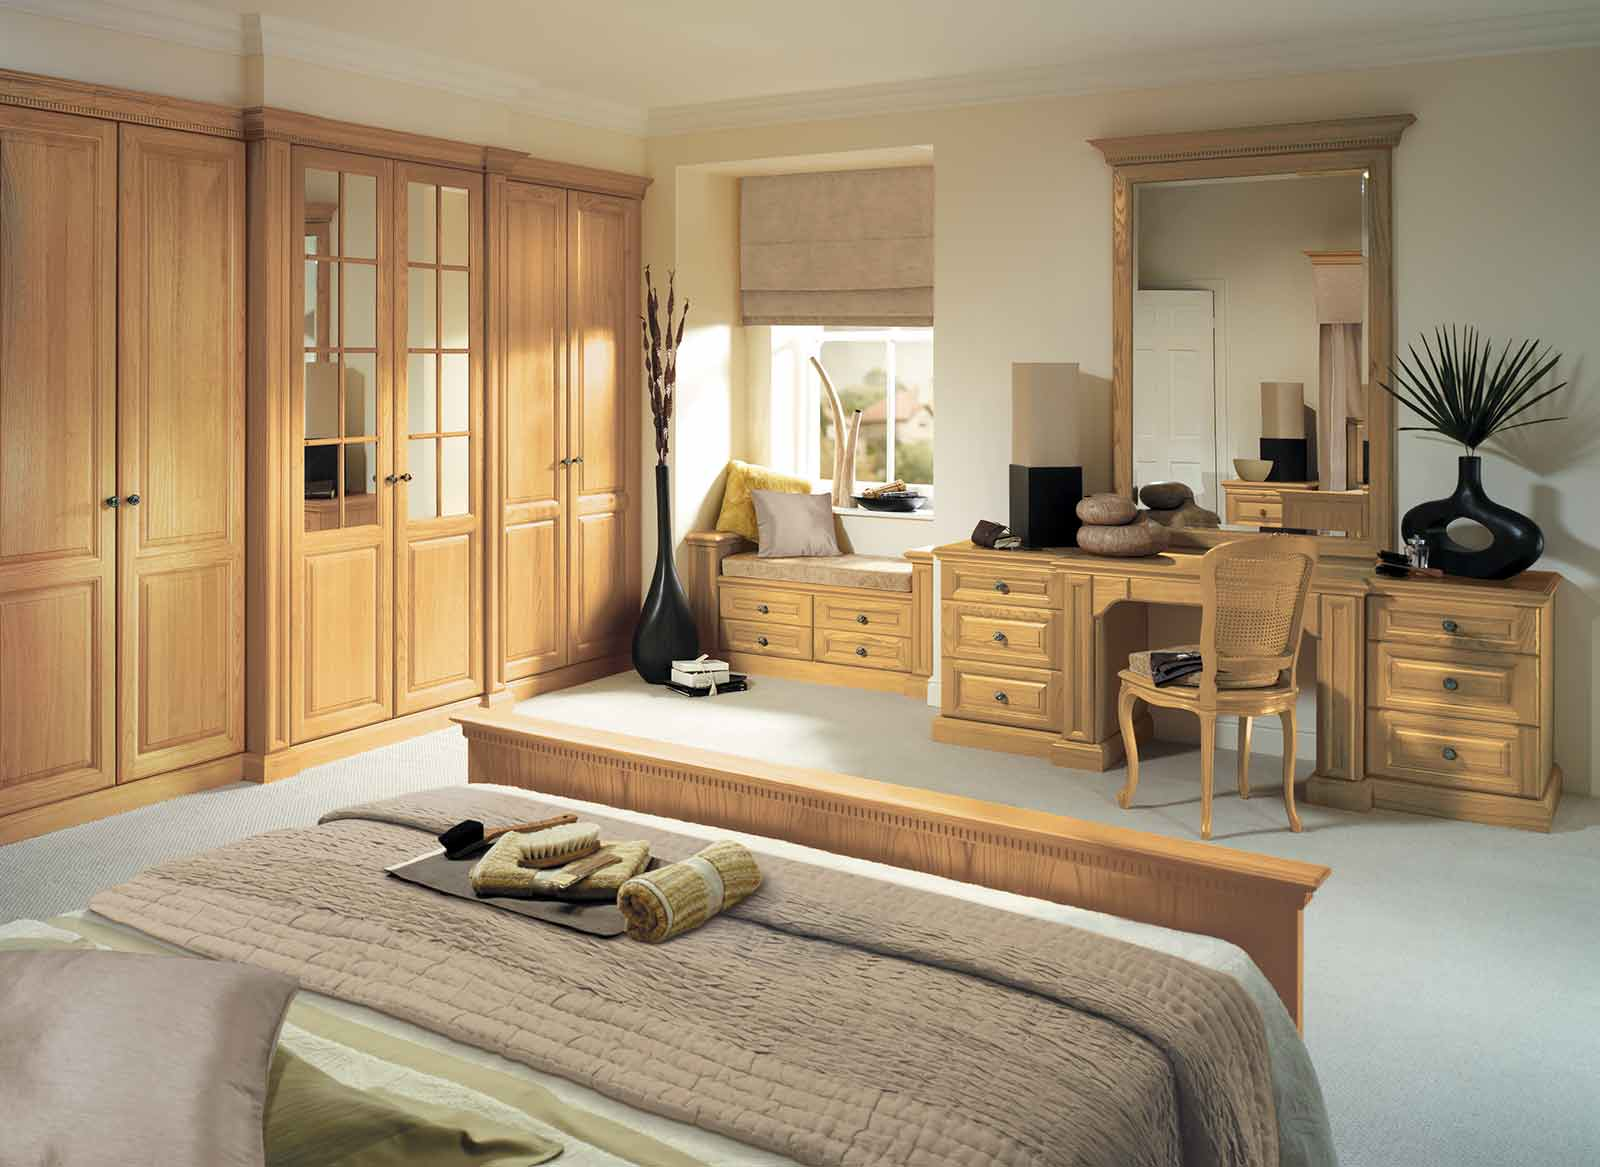 Traditional fitted bedroom furniture by strachan furniture for Traditional bedroom furniture